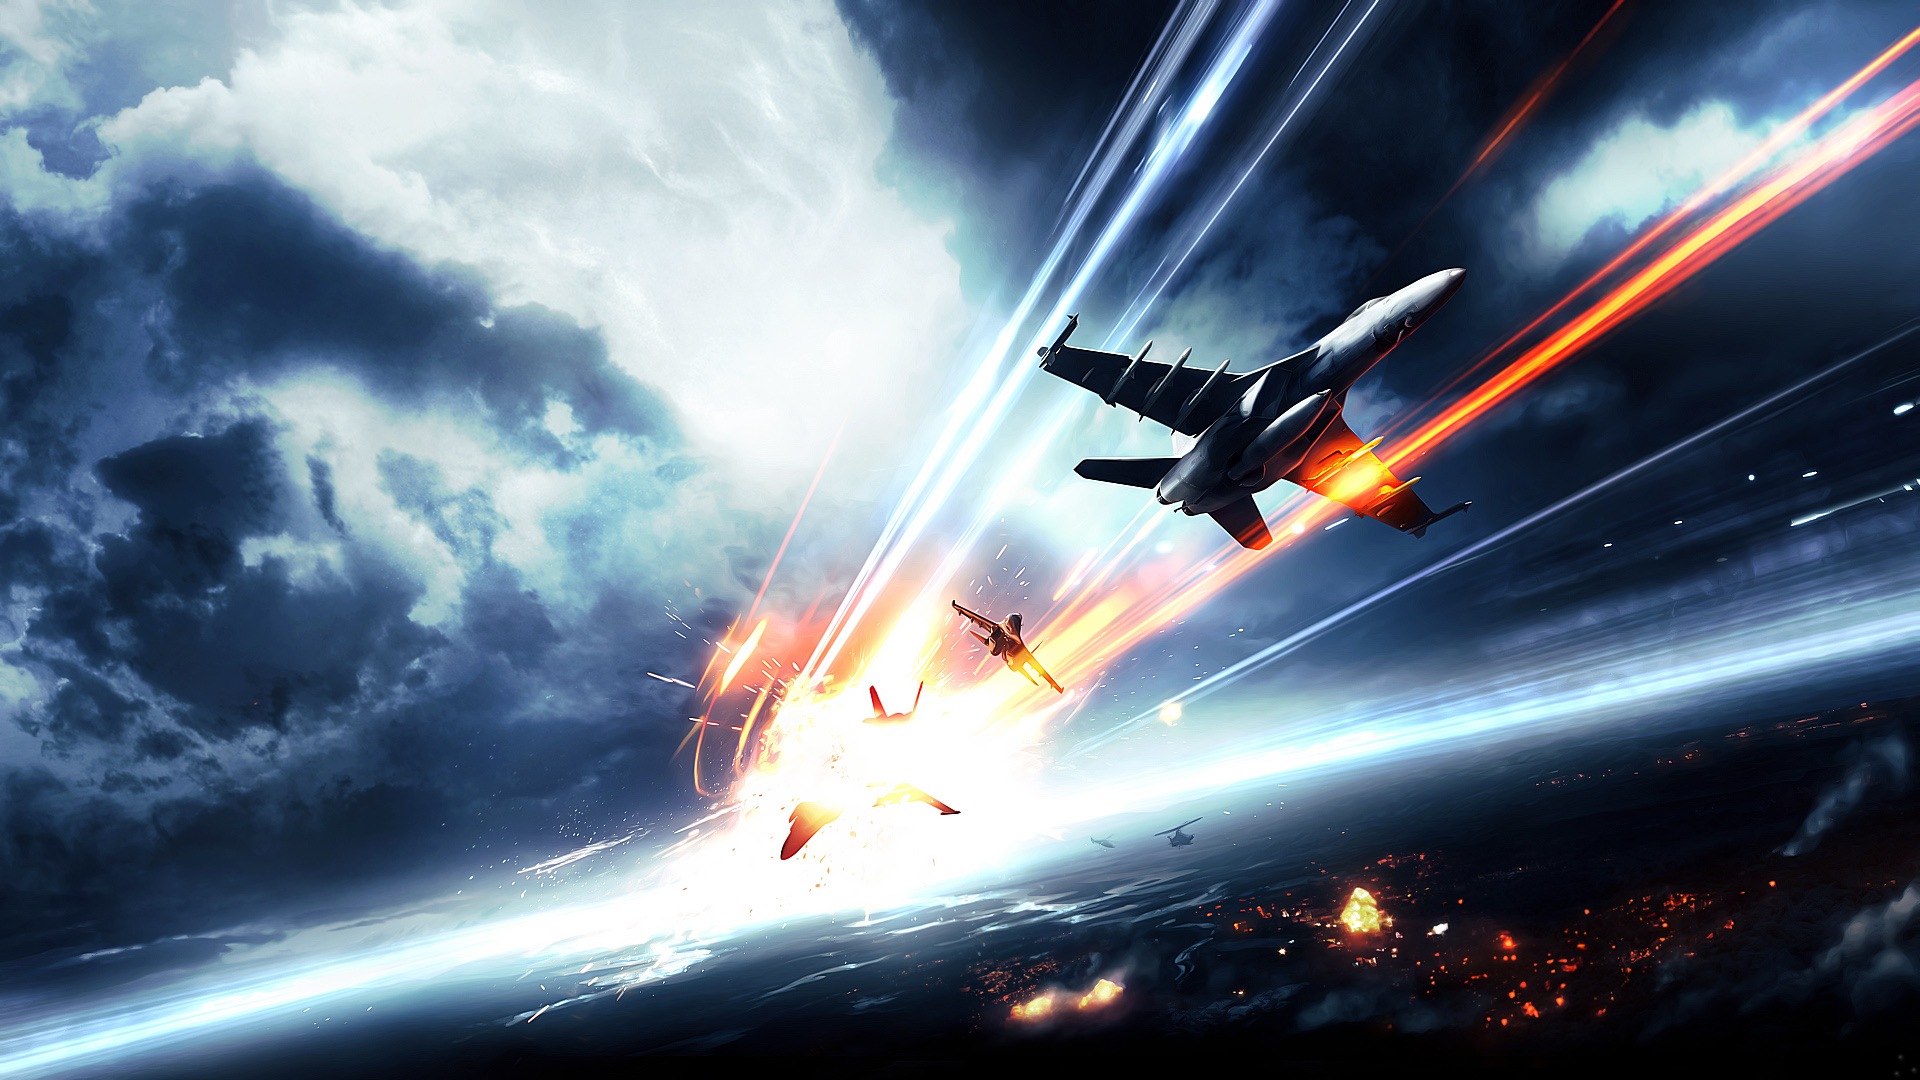 Battlefield 3 Jets Wallpapers HD Wallpapers 1920x1080